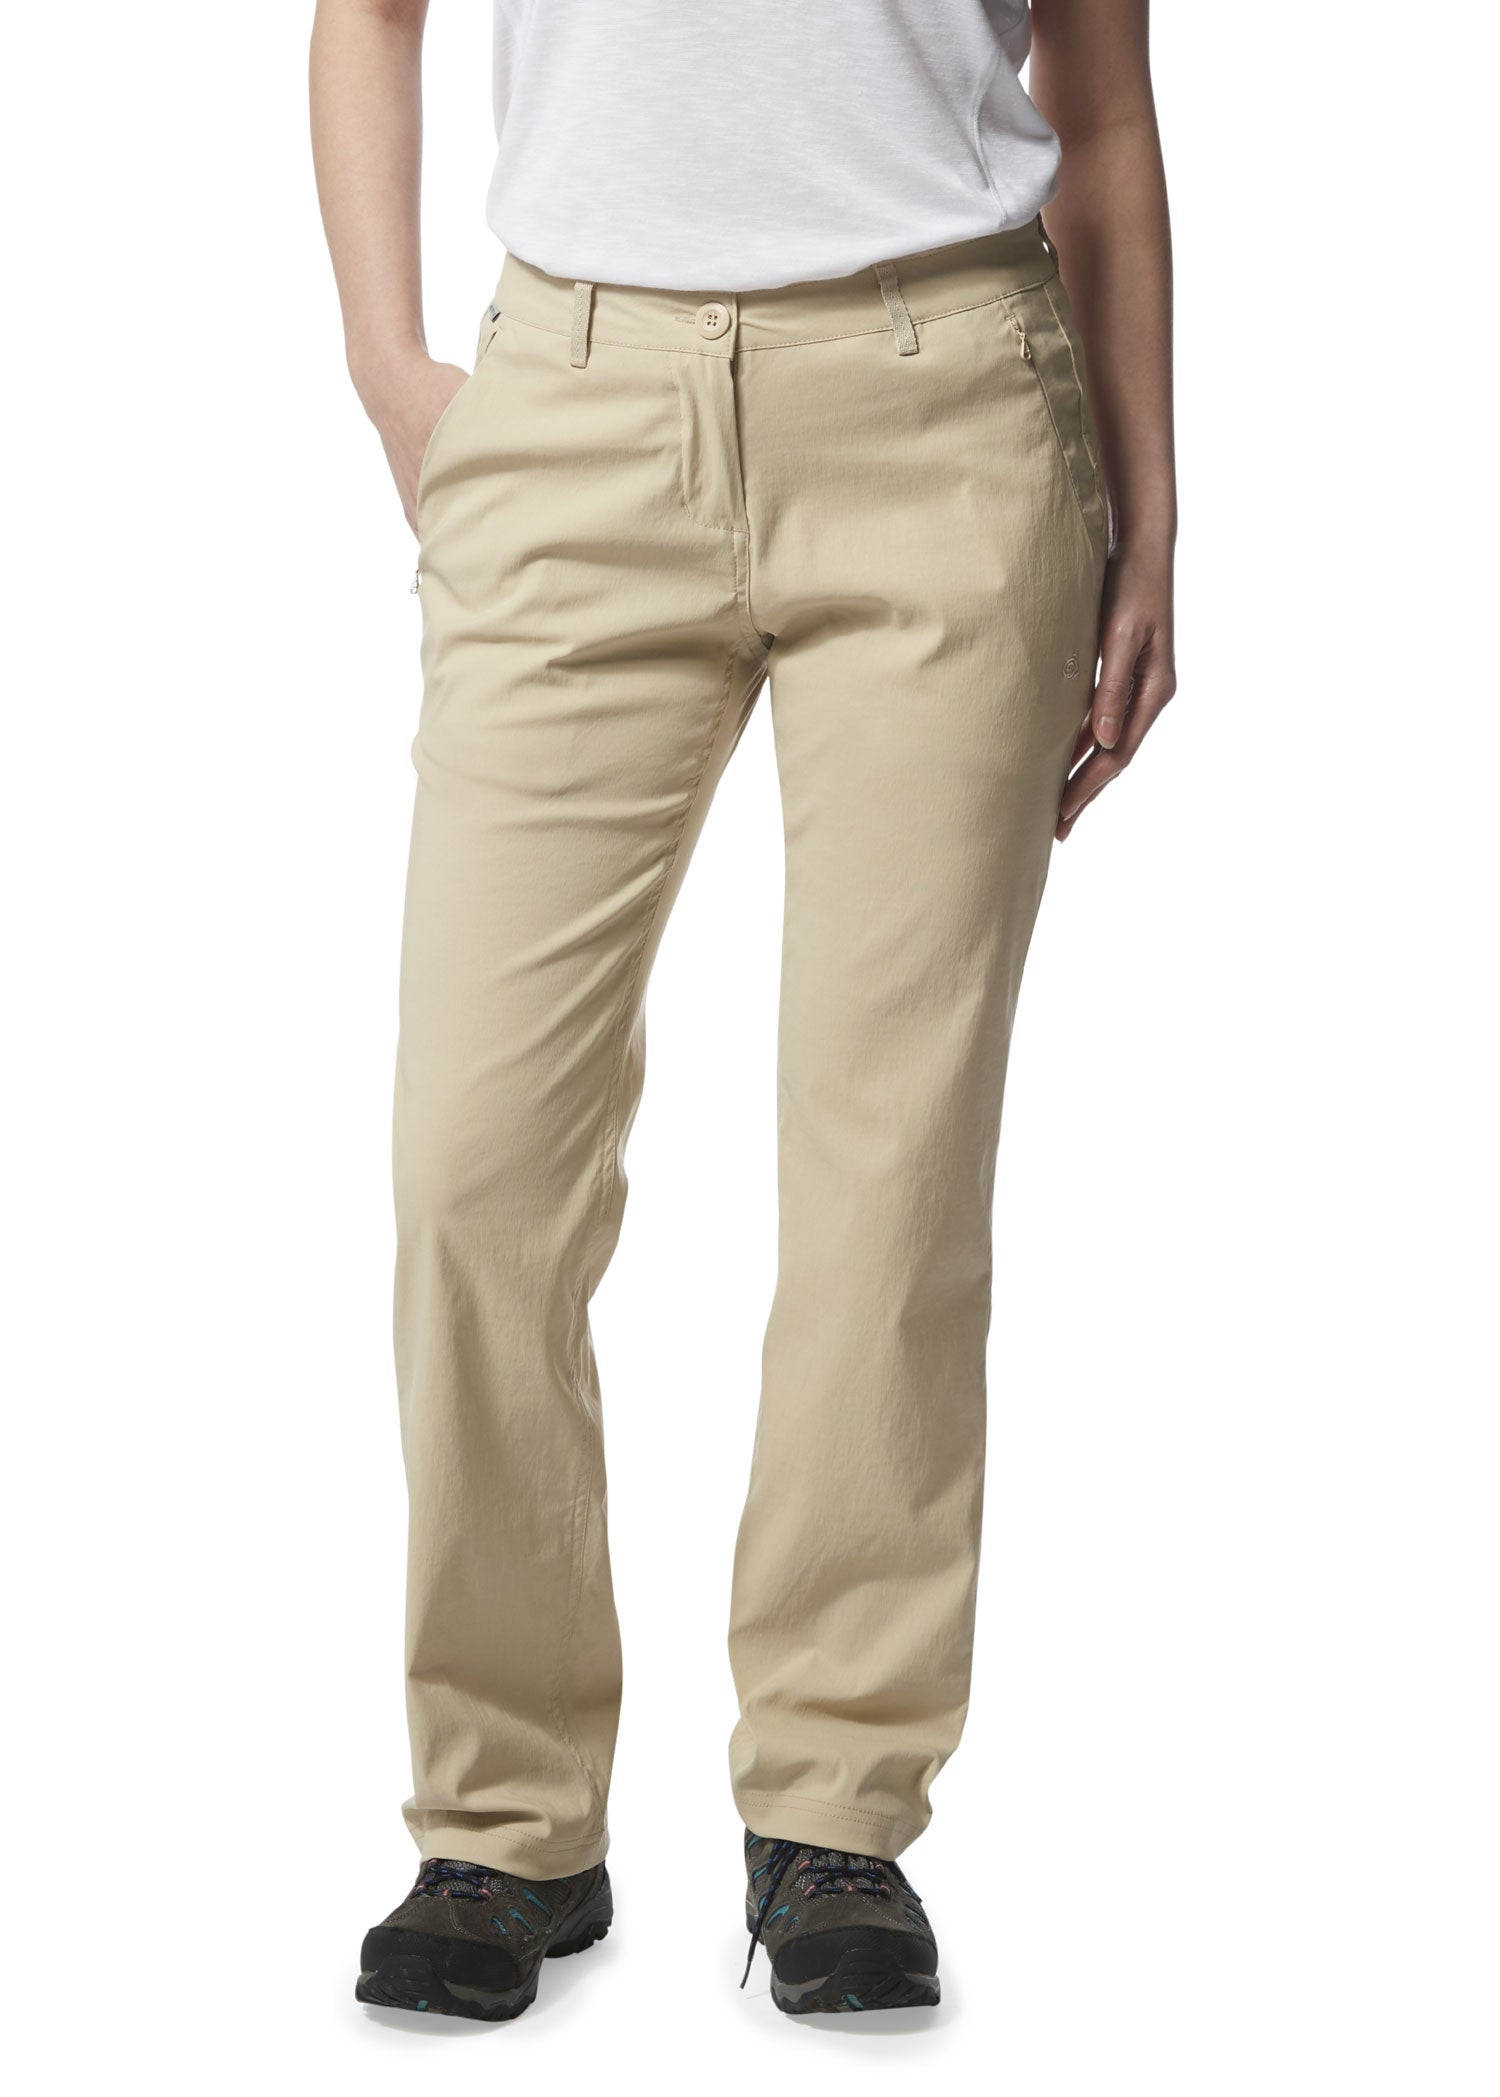 84e5c3a2744c3d Craghoppers Kiwi Pro II Trousers – Hollands Country Clothing